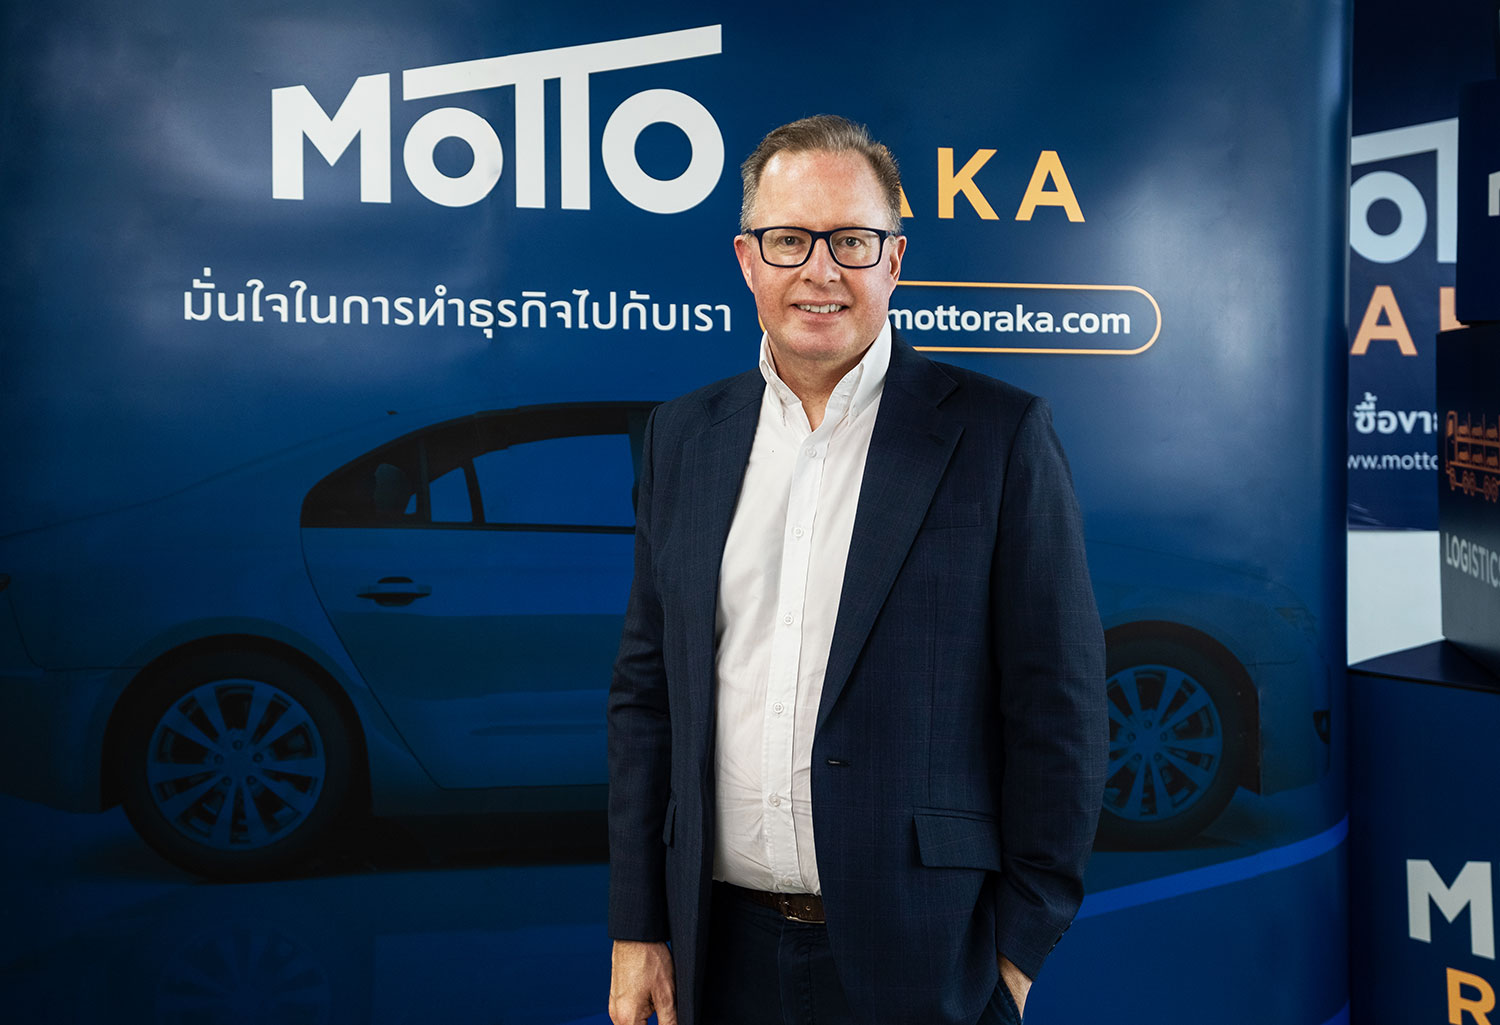 Motto Group: The First to Lead Automotive Business to Penetrate E-commerce Market for Cars